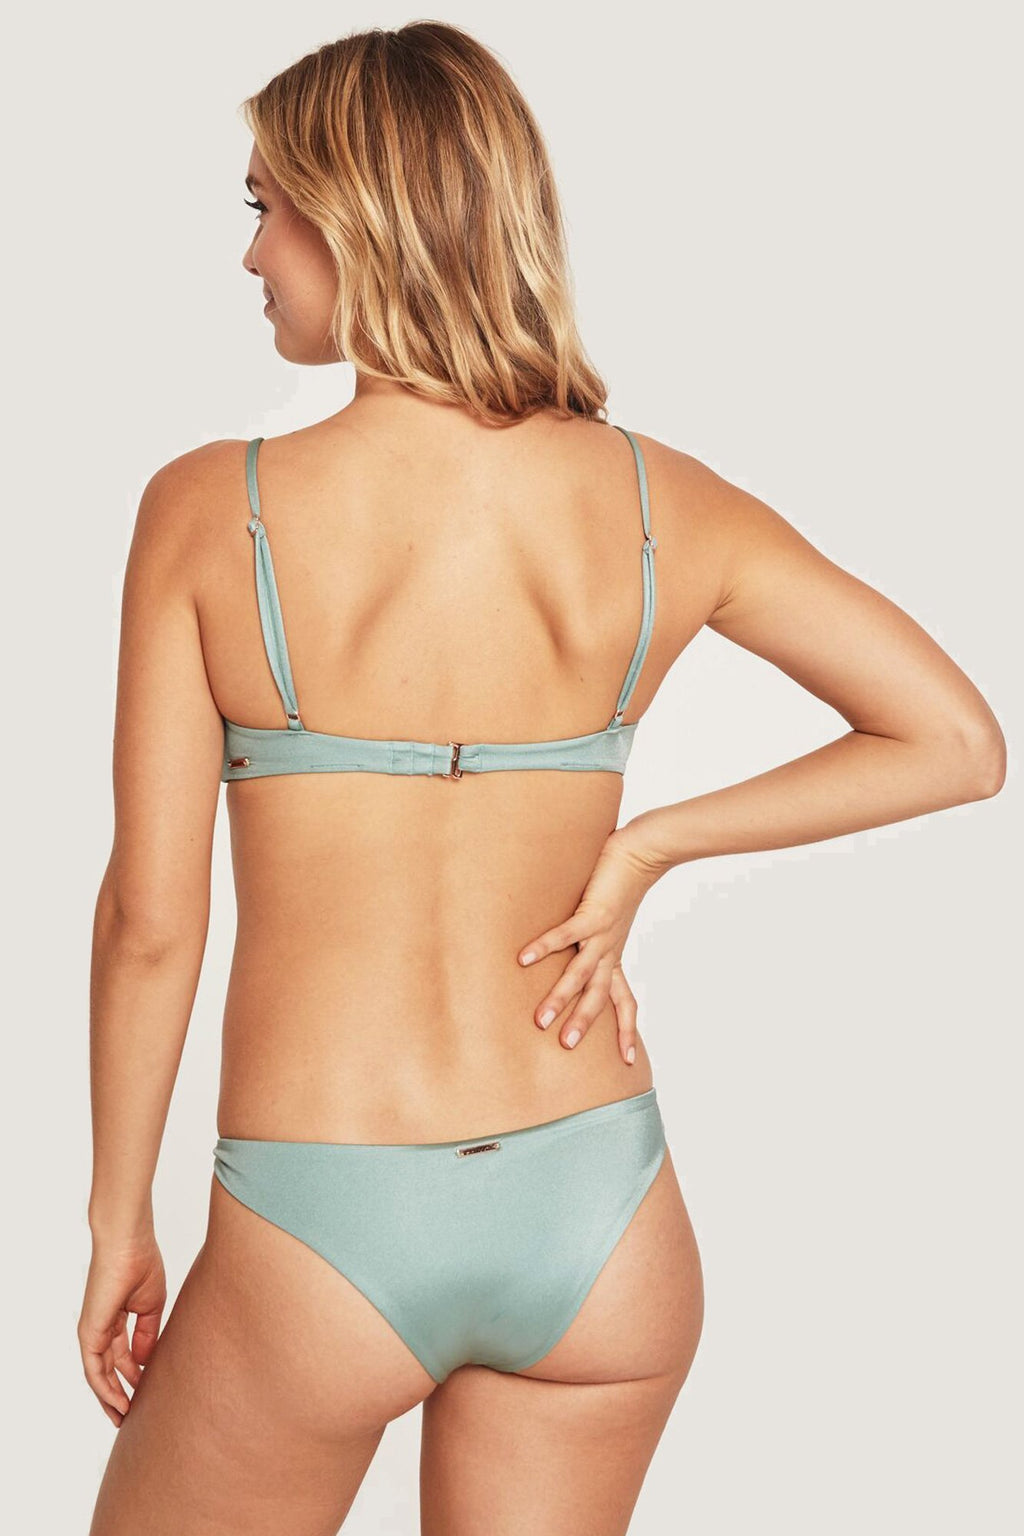 Back view of model wearing light, dusty green, low-rise spiritual gangster bikini bottoms. The Cozumel bikini bottoms in sage features a knotted side detail.